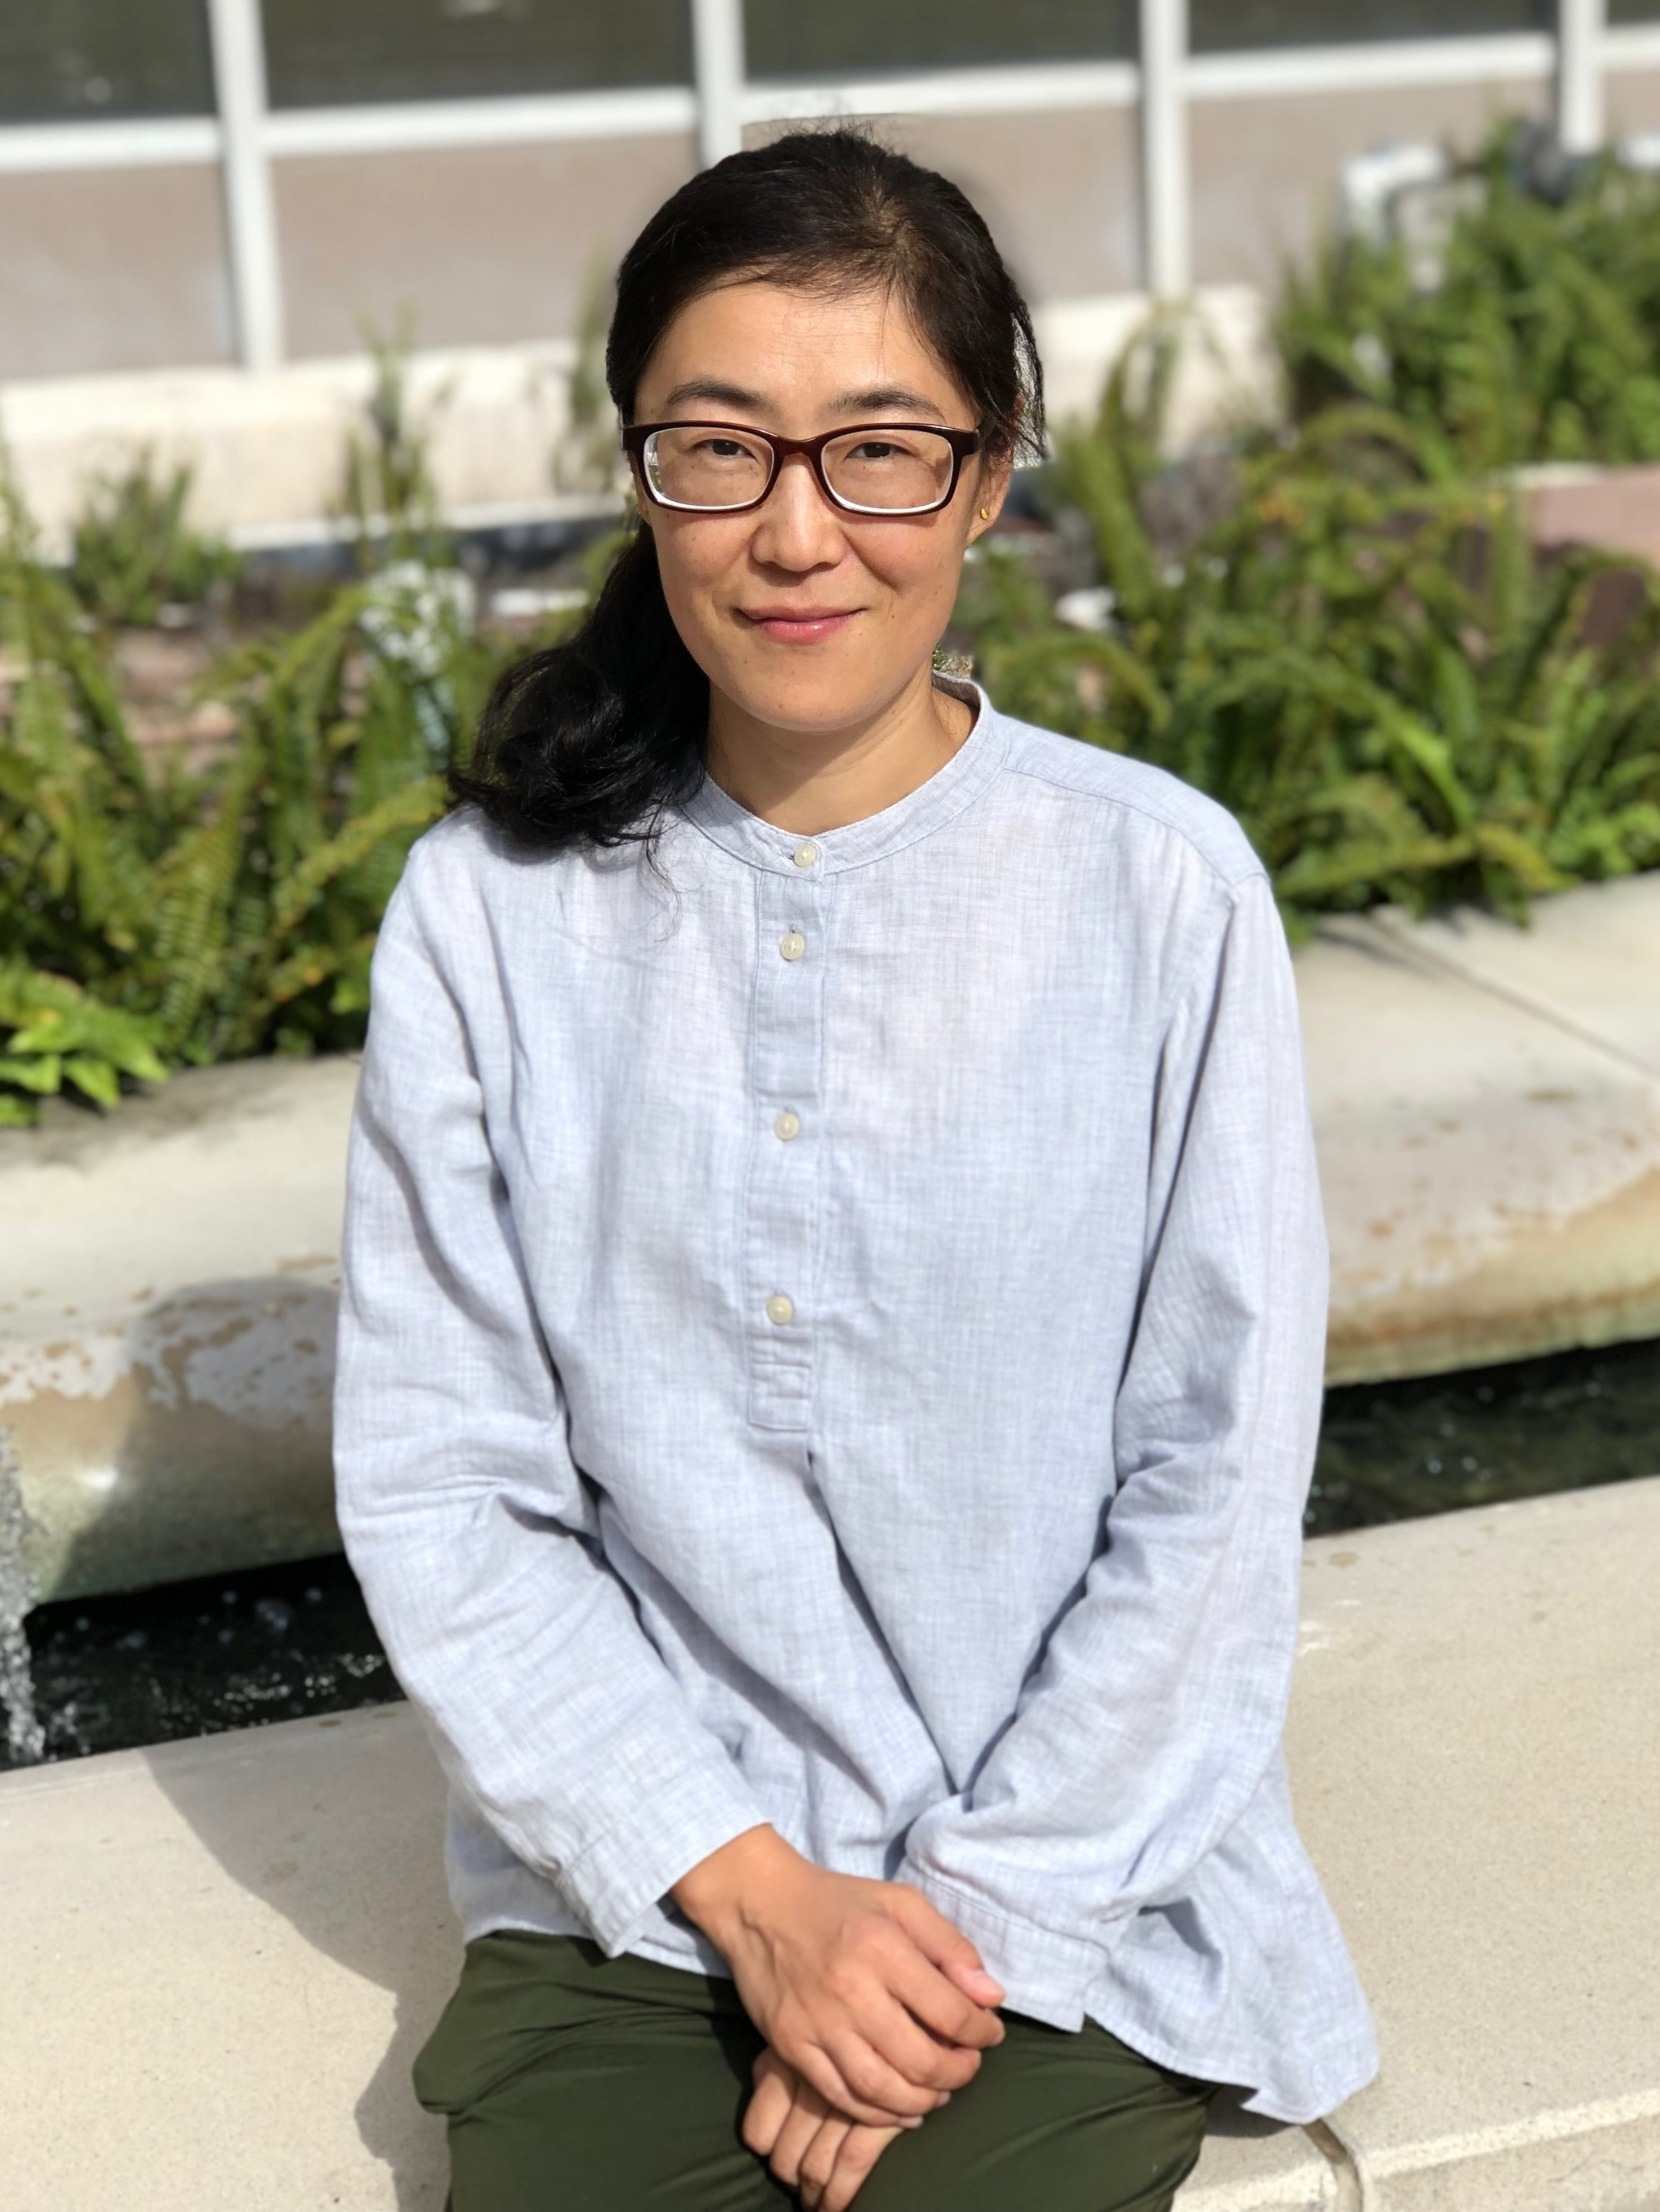 Name: Yidan Li Year joined BCM: 2019 Position: Research Associate/Lab Manager Alma Matter: Northeast Agricultural University, Tottori University Hometown: Harbin, China What you are working on: CRISPR/Cas9 mediated endogenous tagging and/or knockout of genes; lentivirus generation and transduction; generate CRISPR/lentiviral constructs; genomic and high throughput sequencing based assays; computational analysis of high-throughput sequencing data